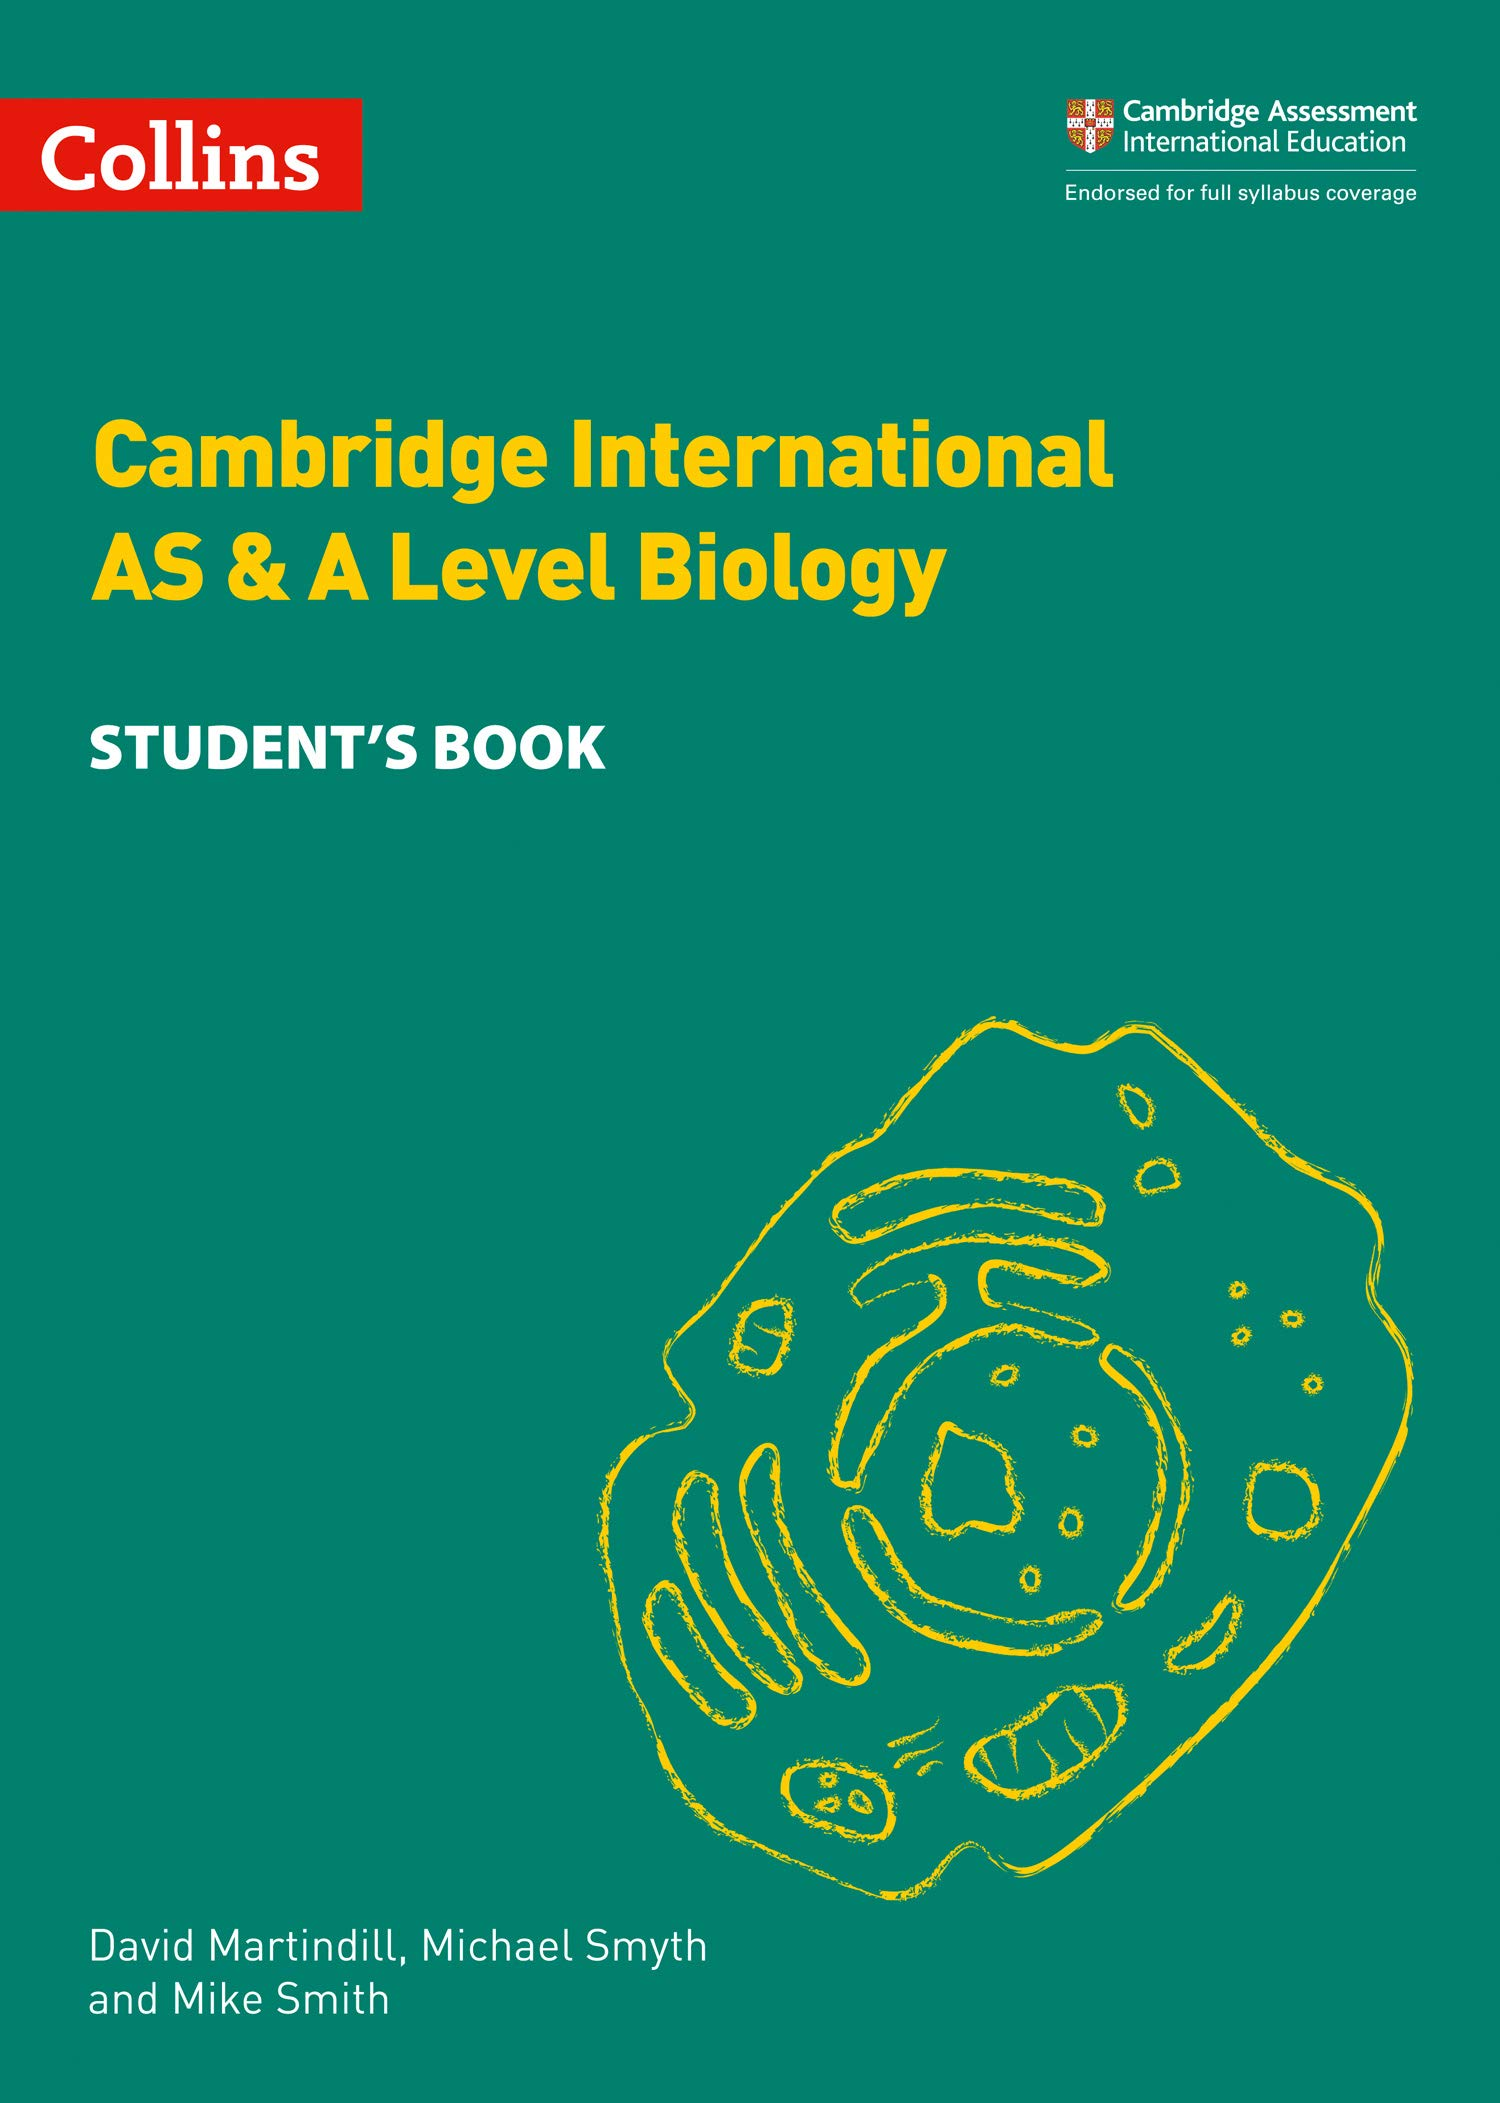 Collins Cambridge International AS & A Level Biology Student Book